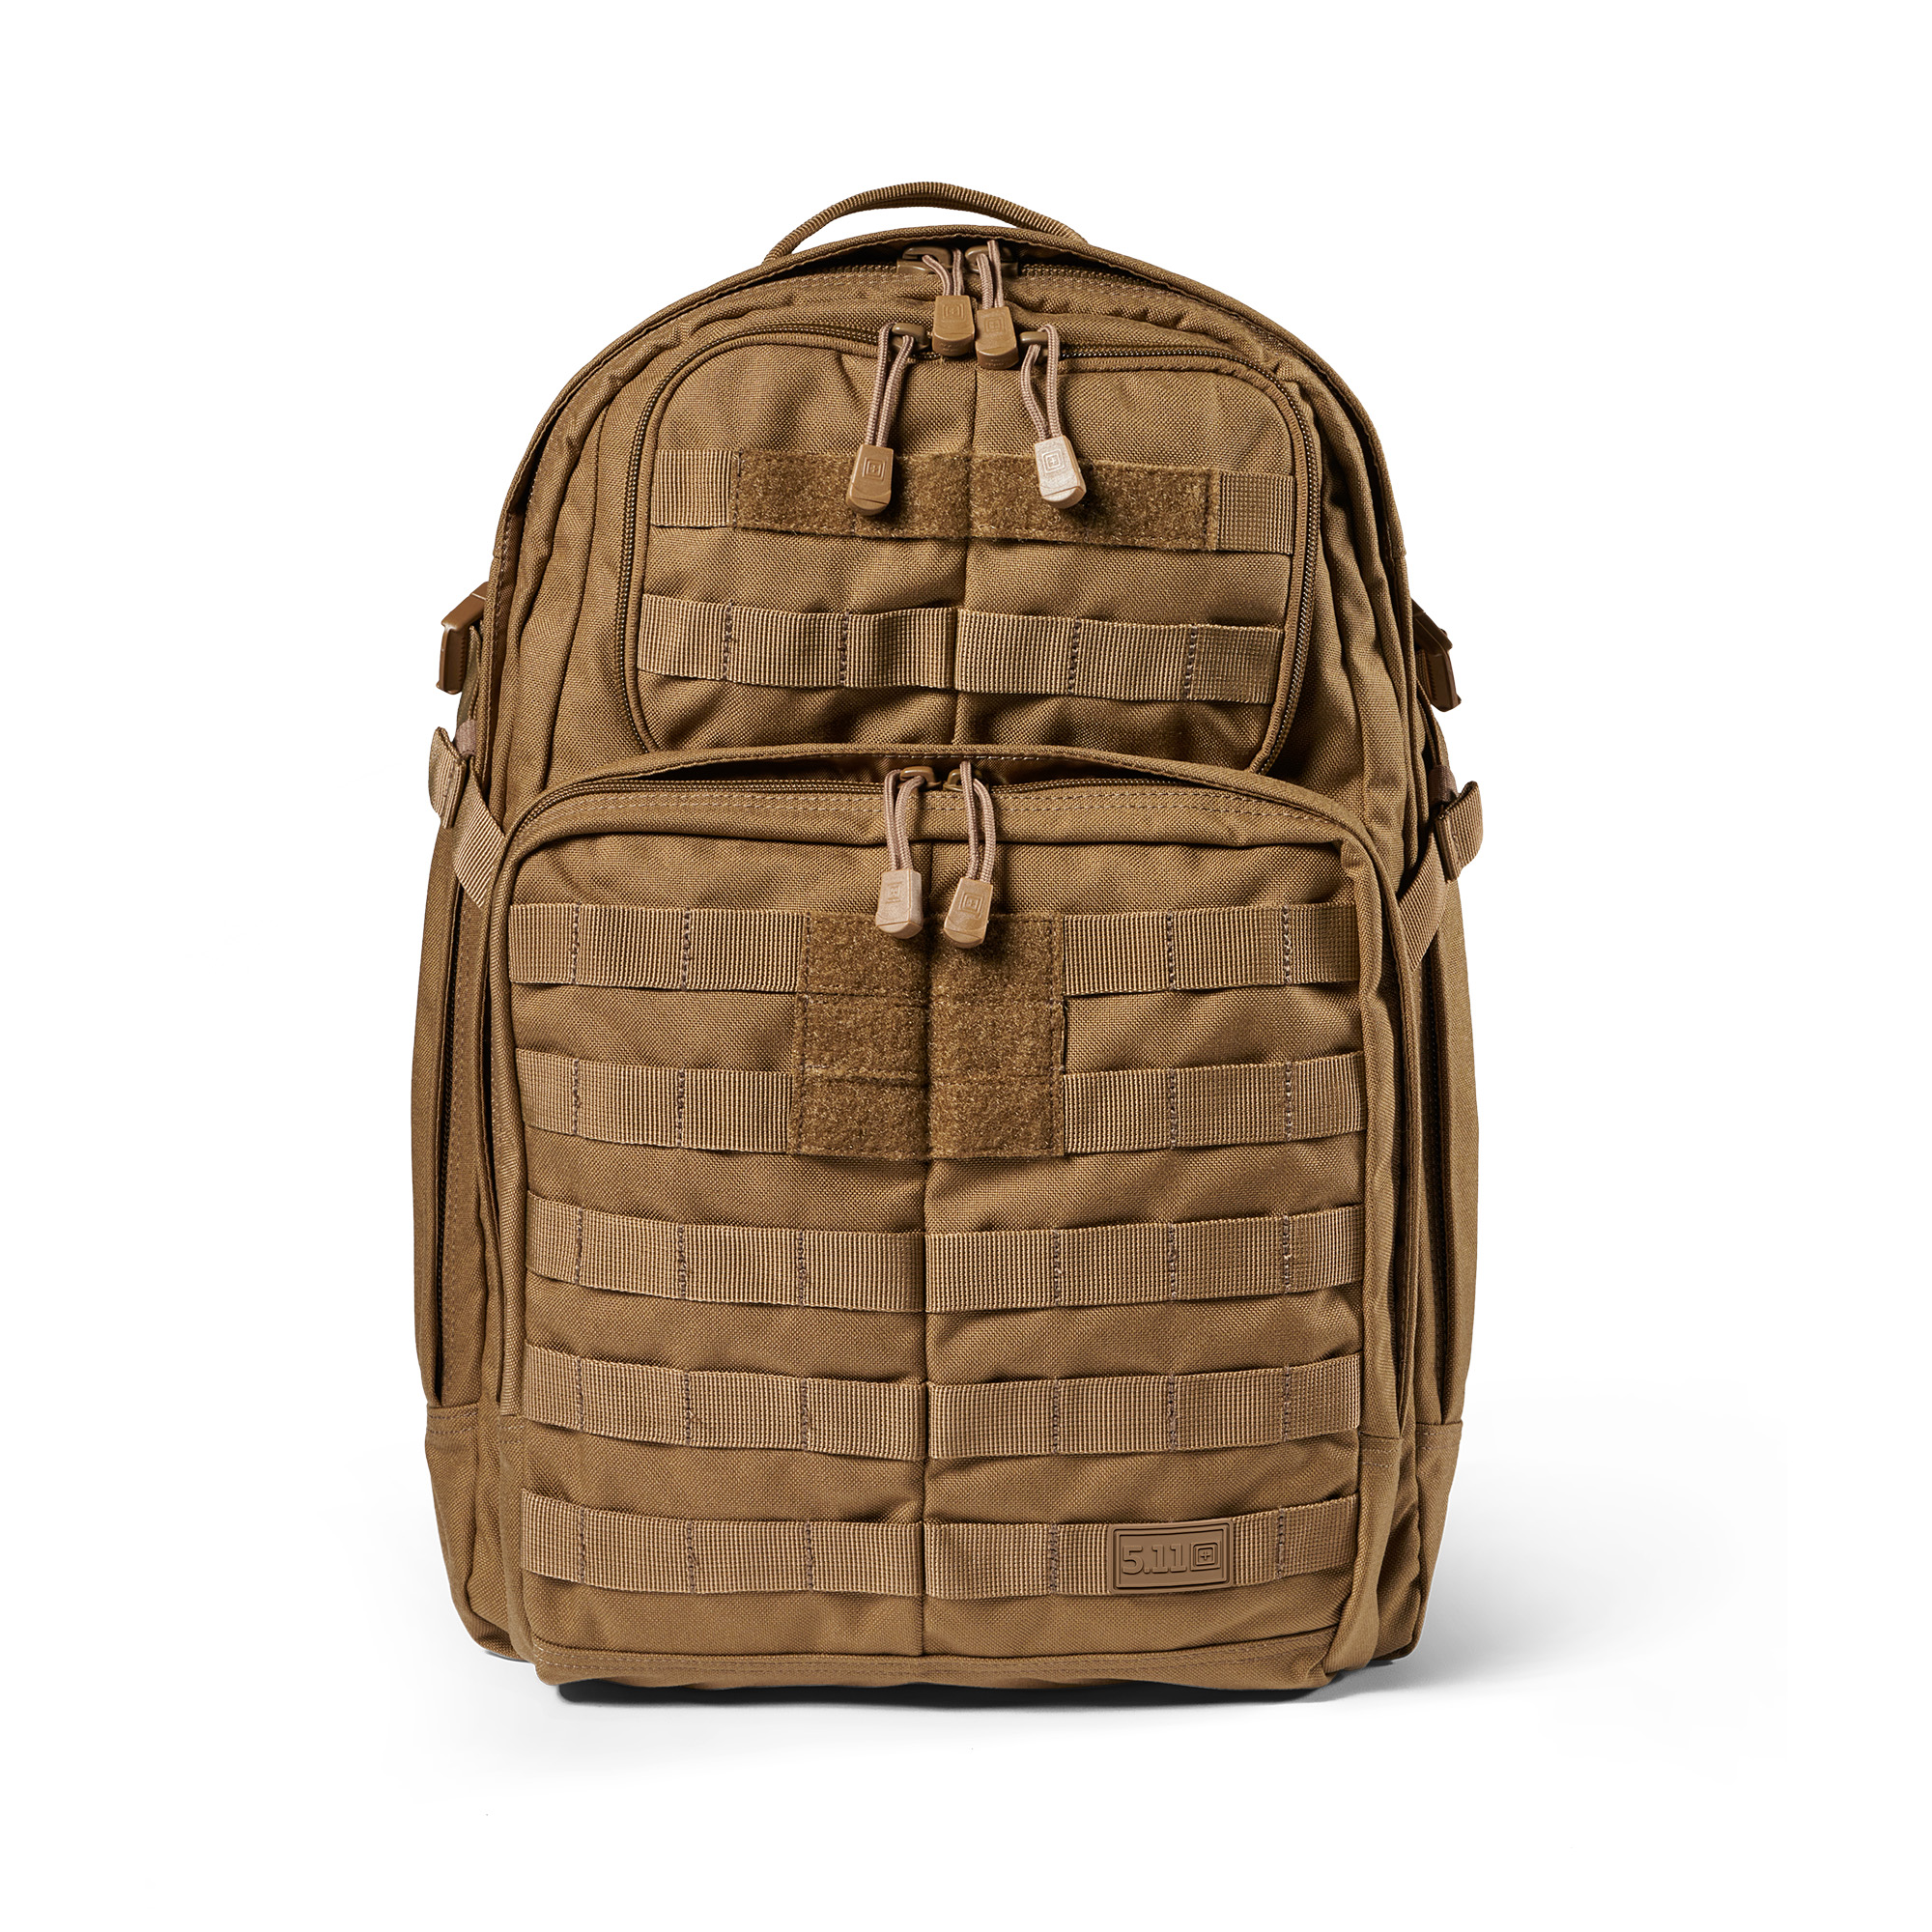 Balo 5.11 Tactical Rush 24 2.0 - Kangaroo